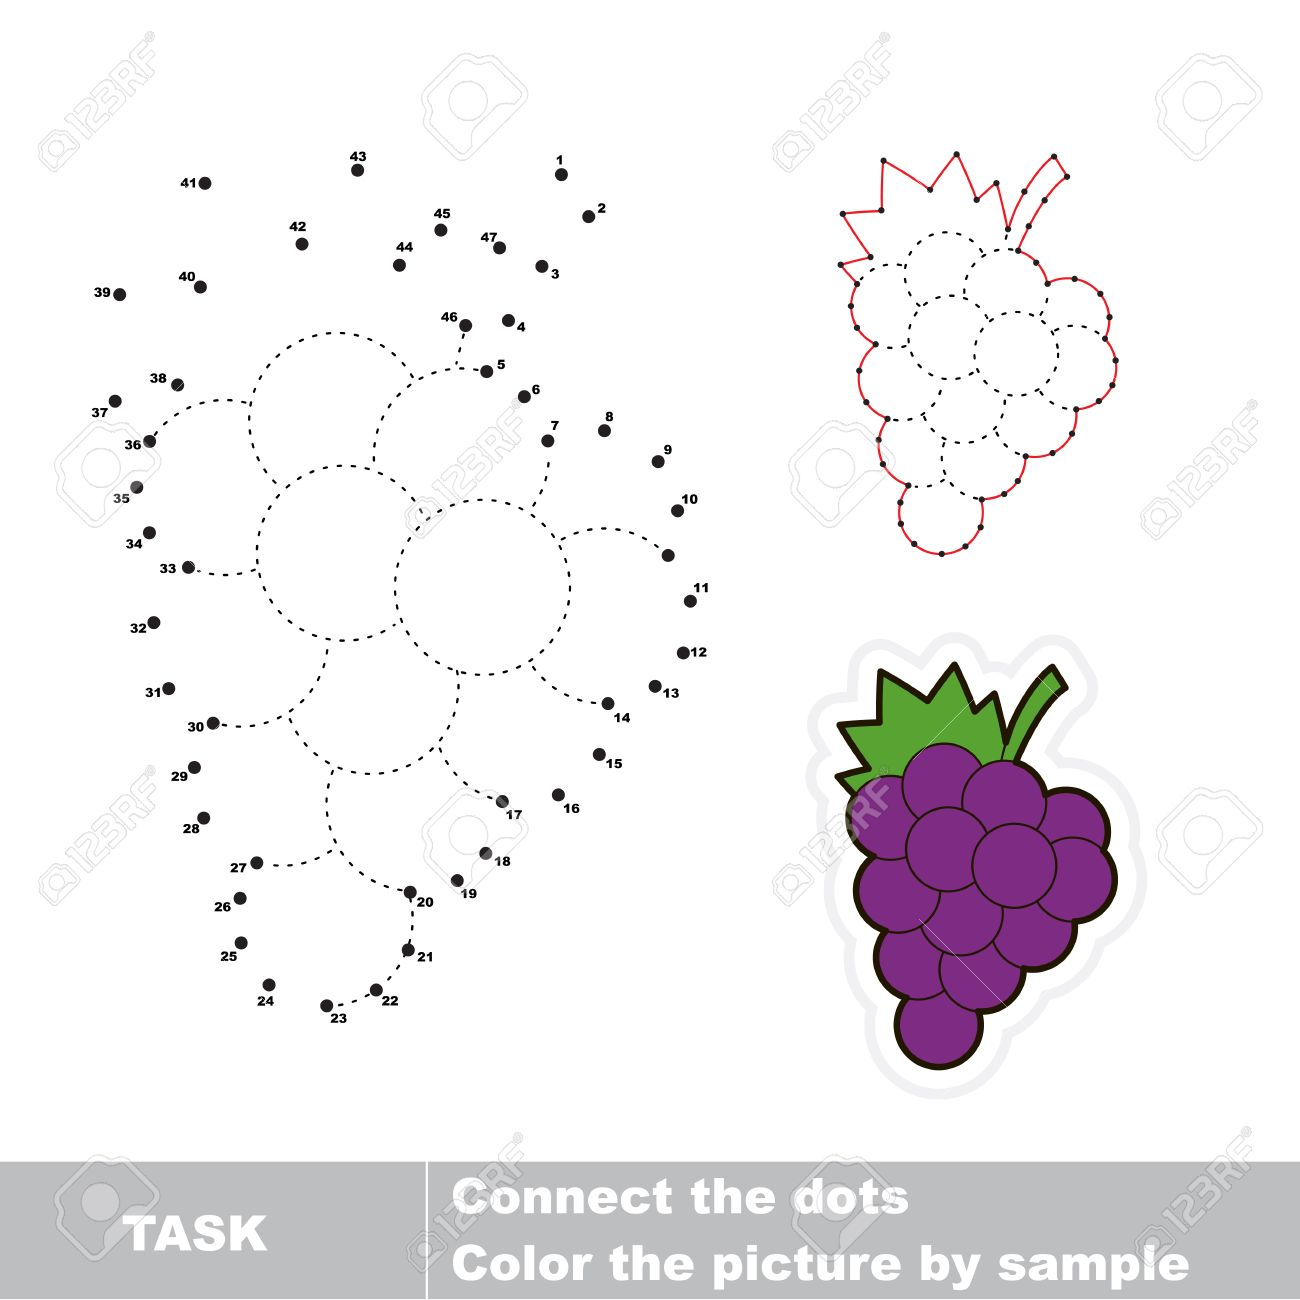 game for numbers cartoon grapes connect the dots and find hidden